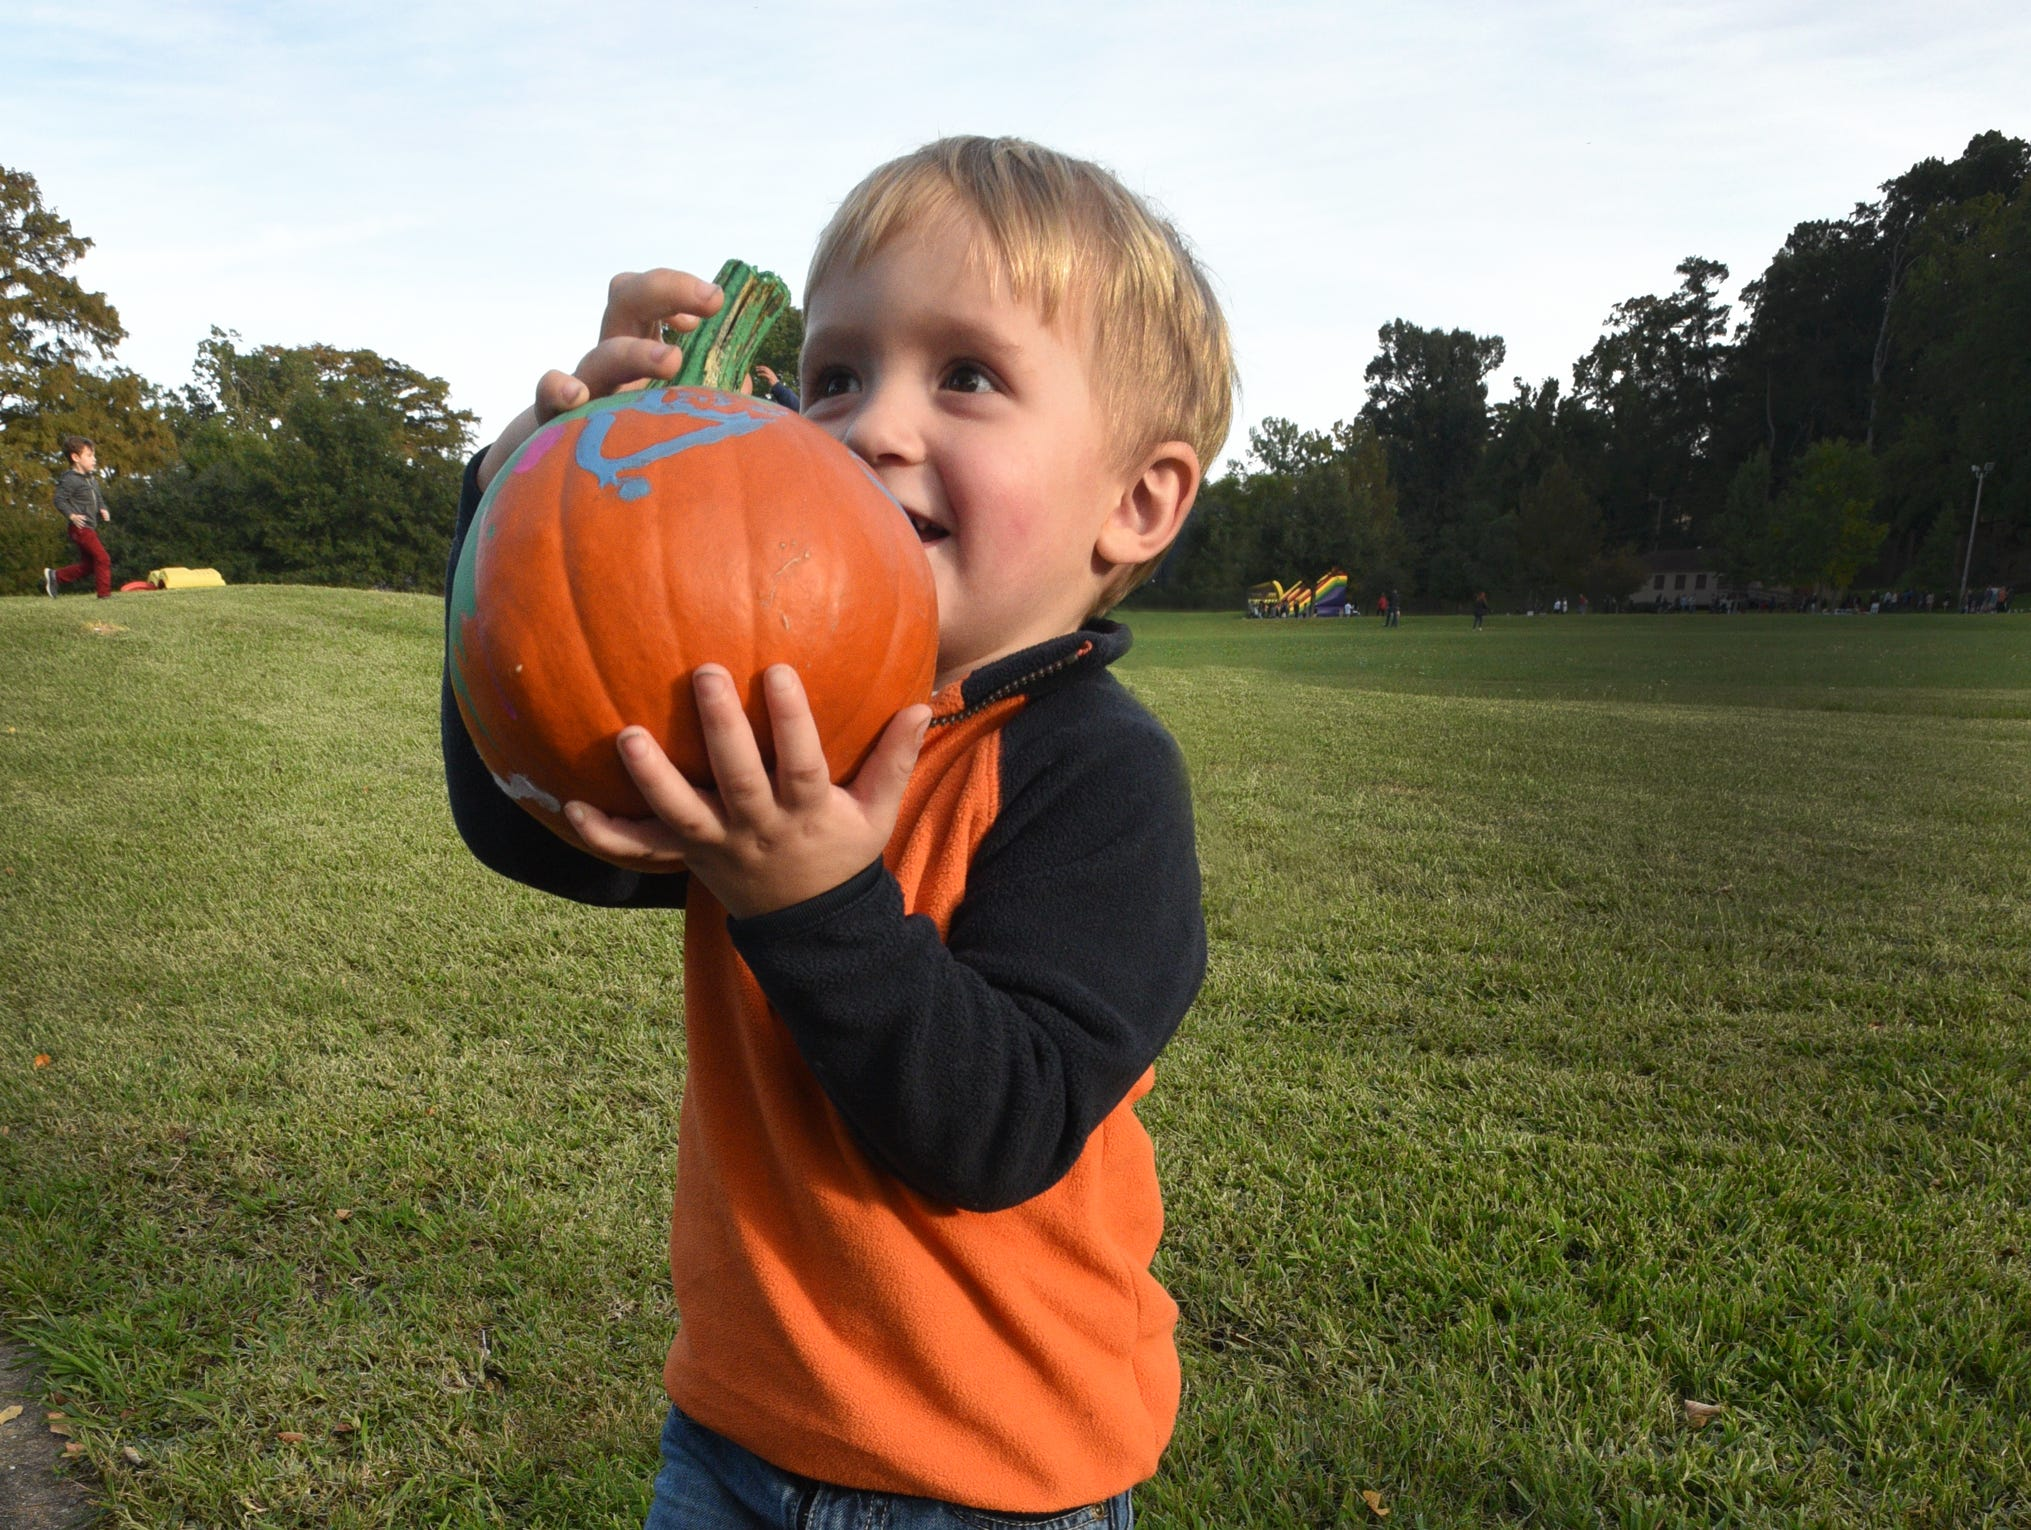 Easton Harvey wants a super hero pumpkin at the 26th Annual Pumpkin Shine on Line held Tuesday at Betty Virginia Park.